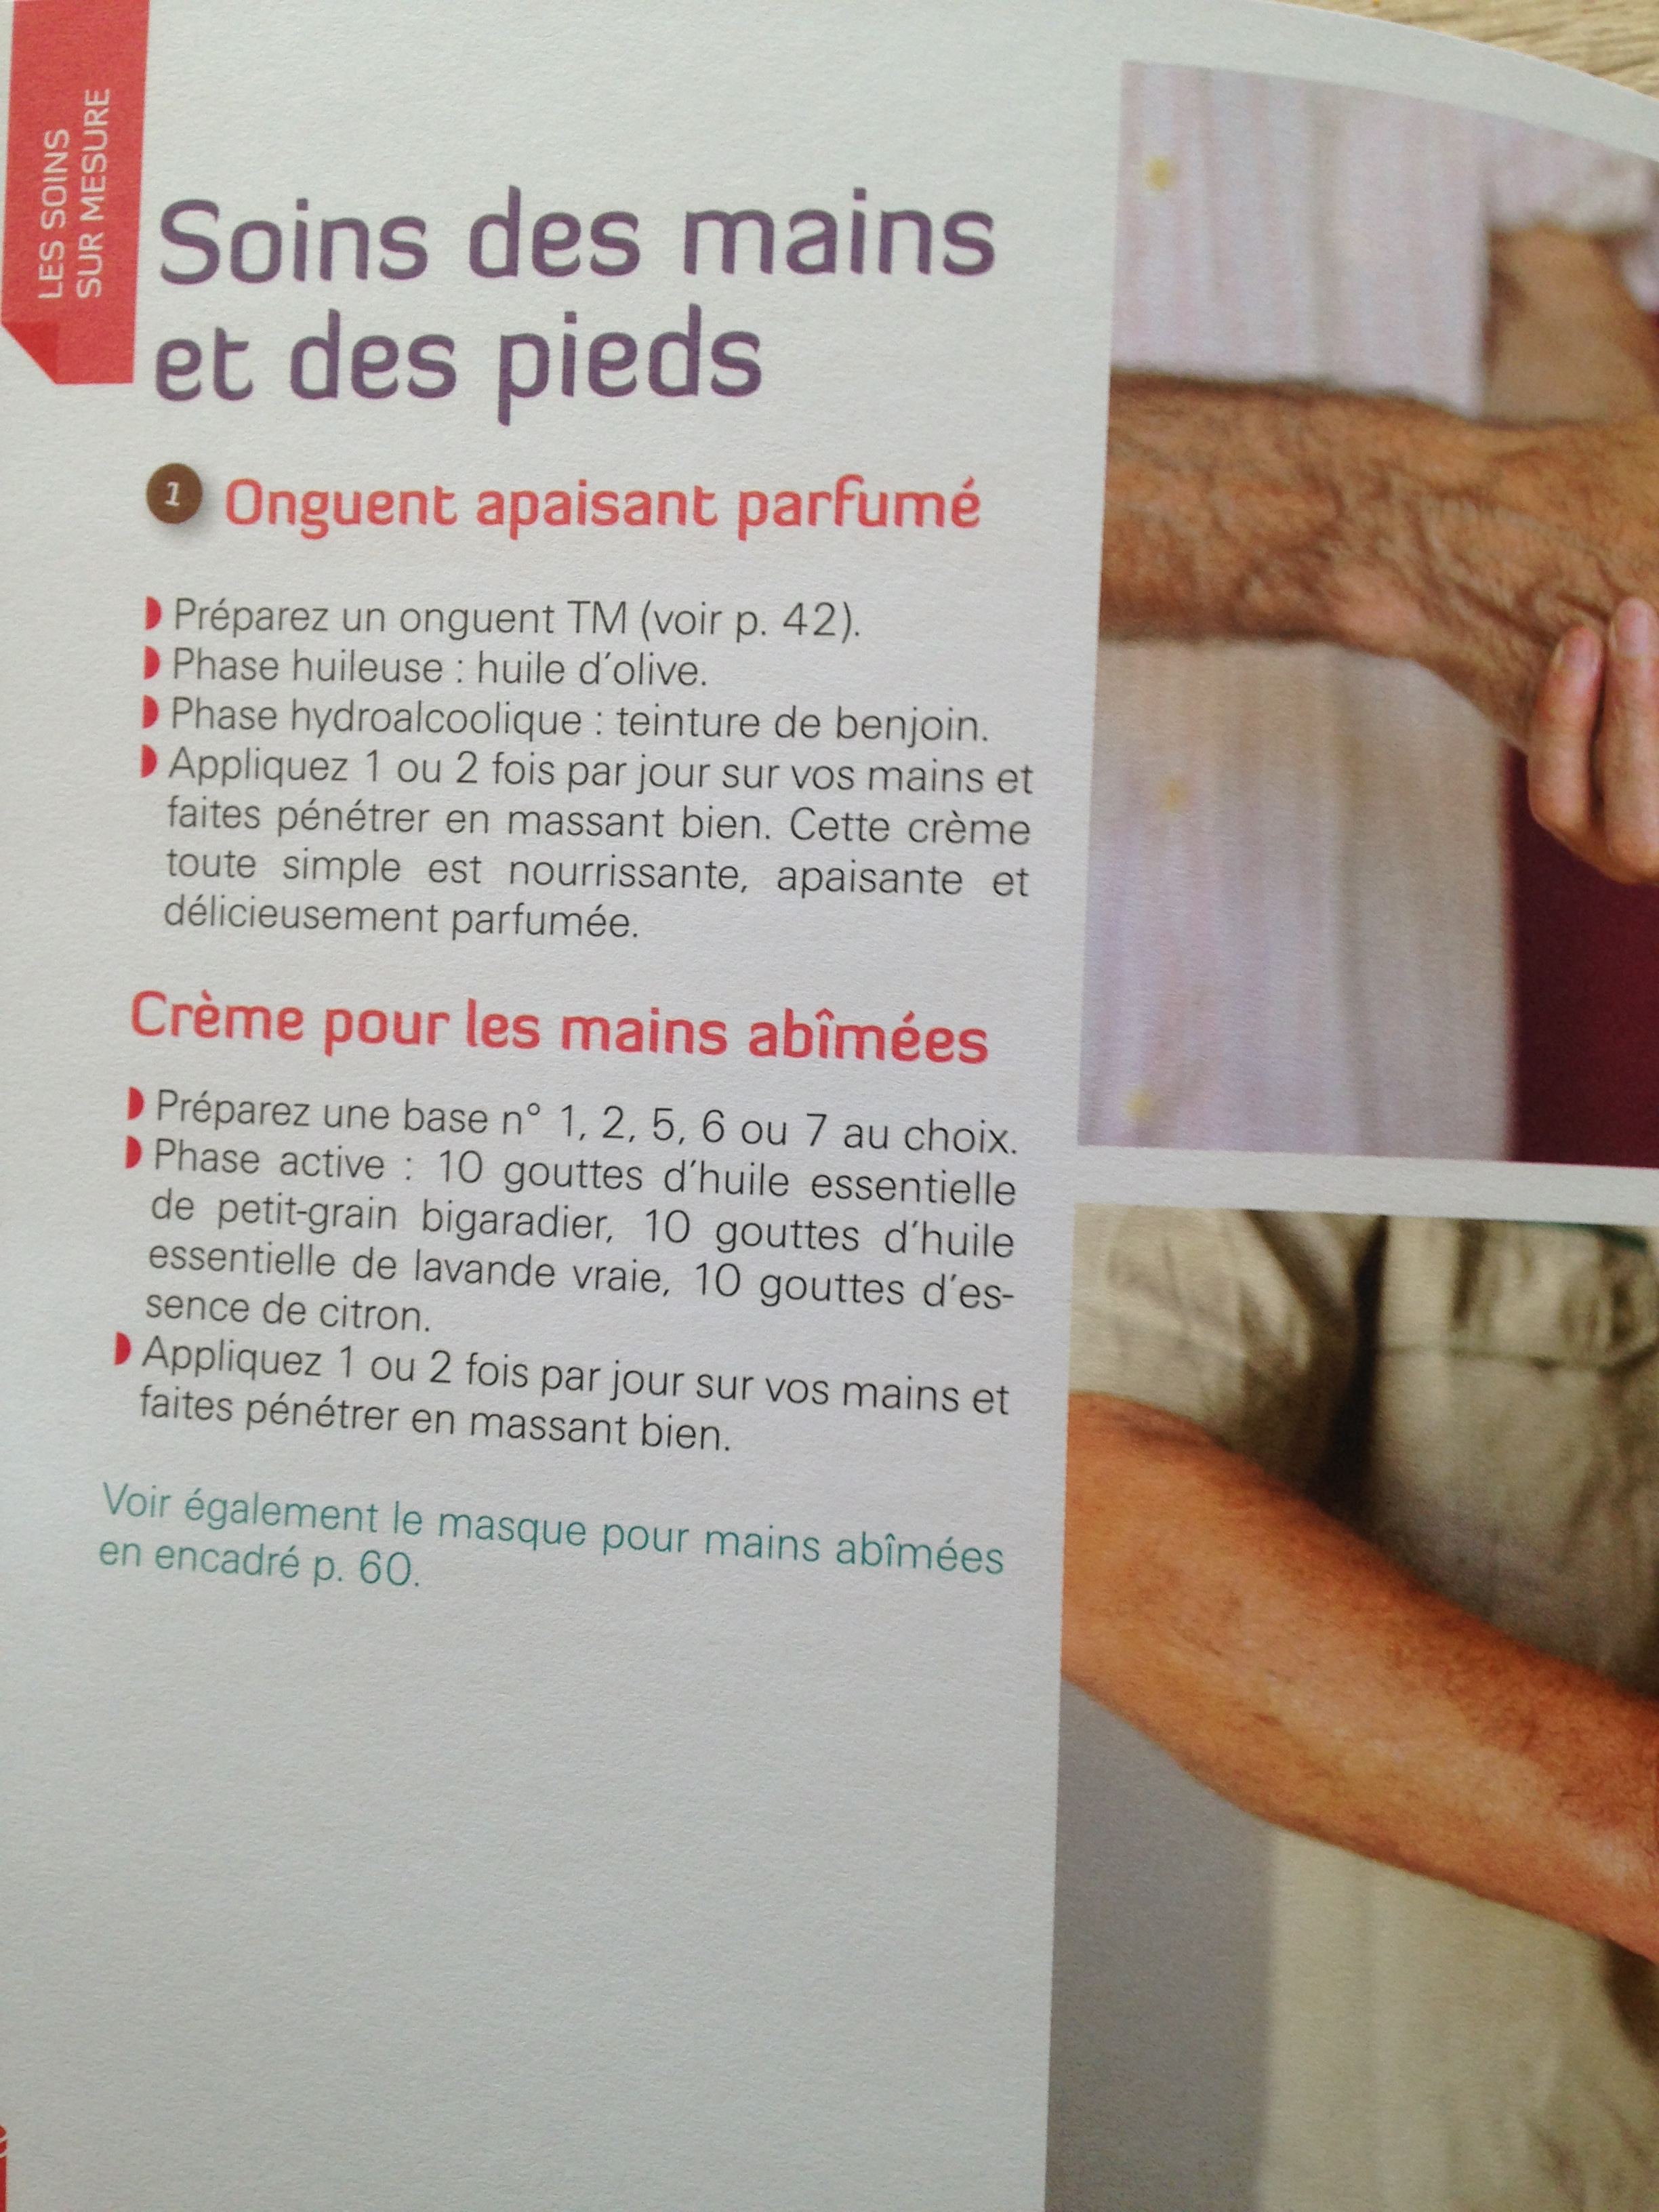 guide-soins